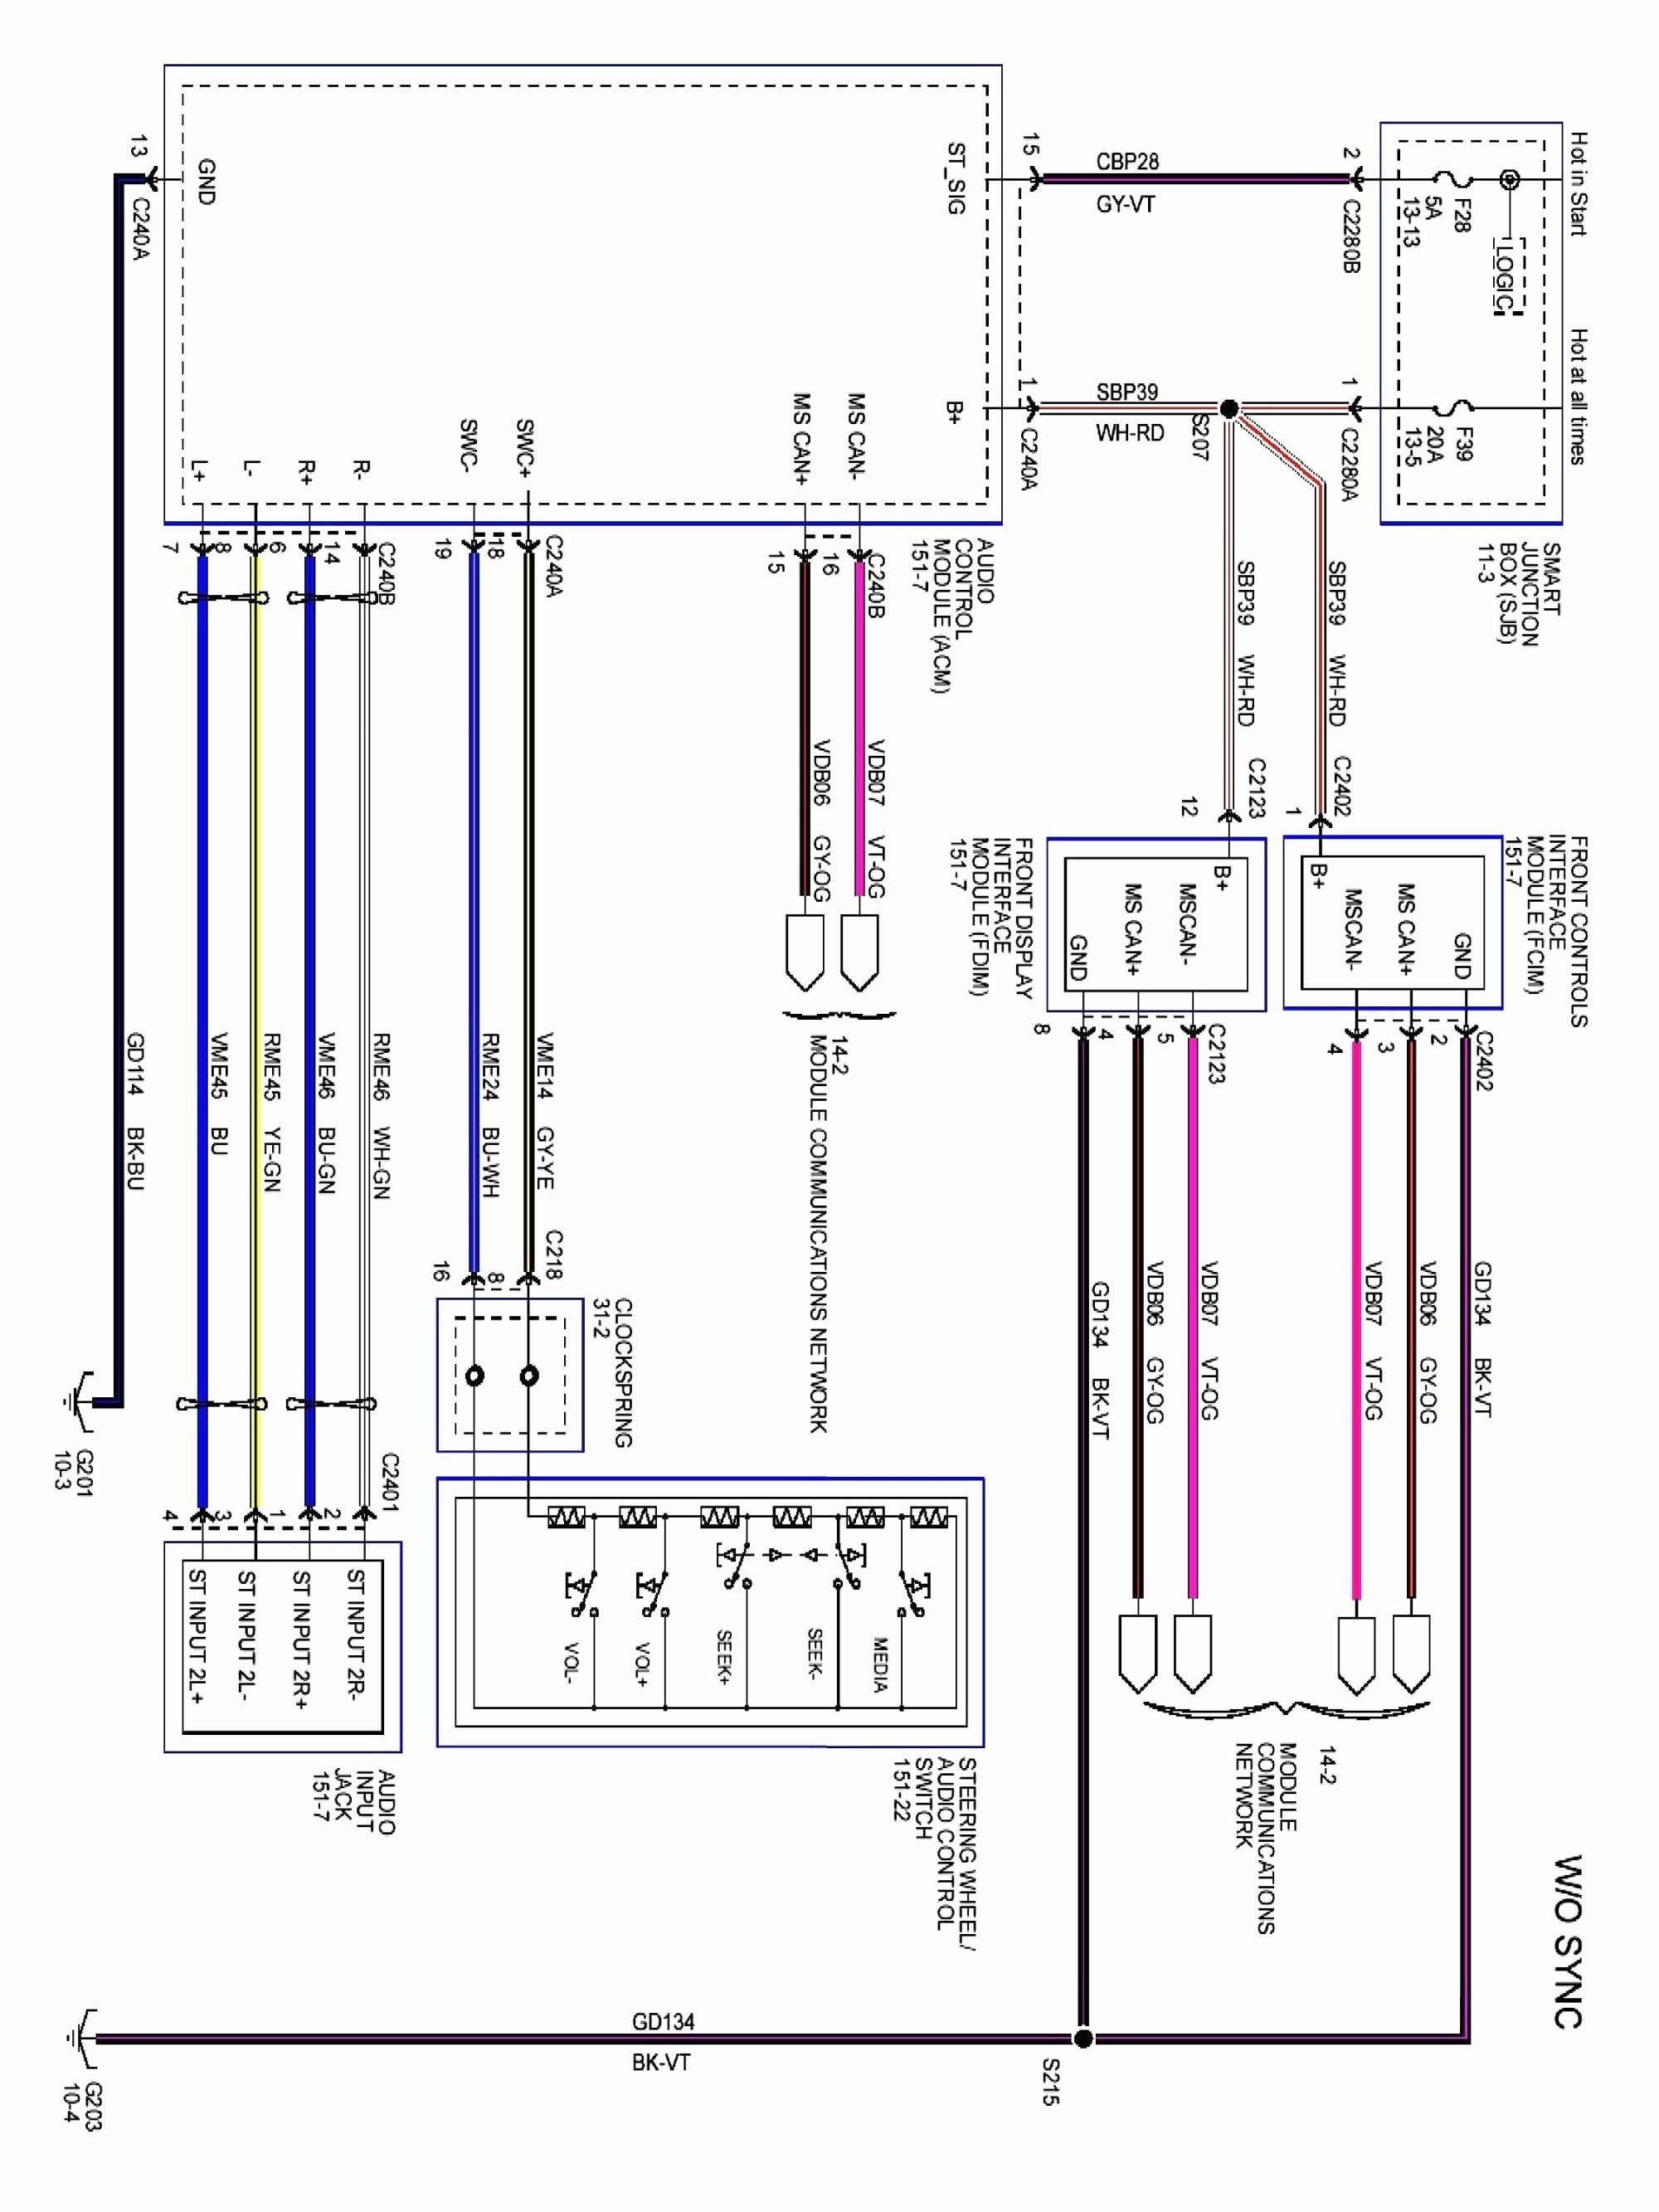 hight resolution of car audio diagrams and charts car stereo wiring diagram image of car audio diagrams and charts